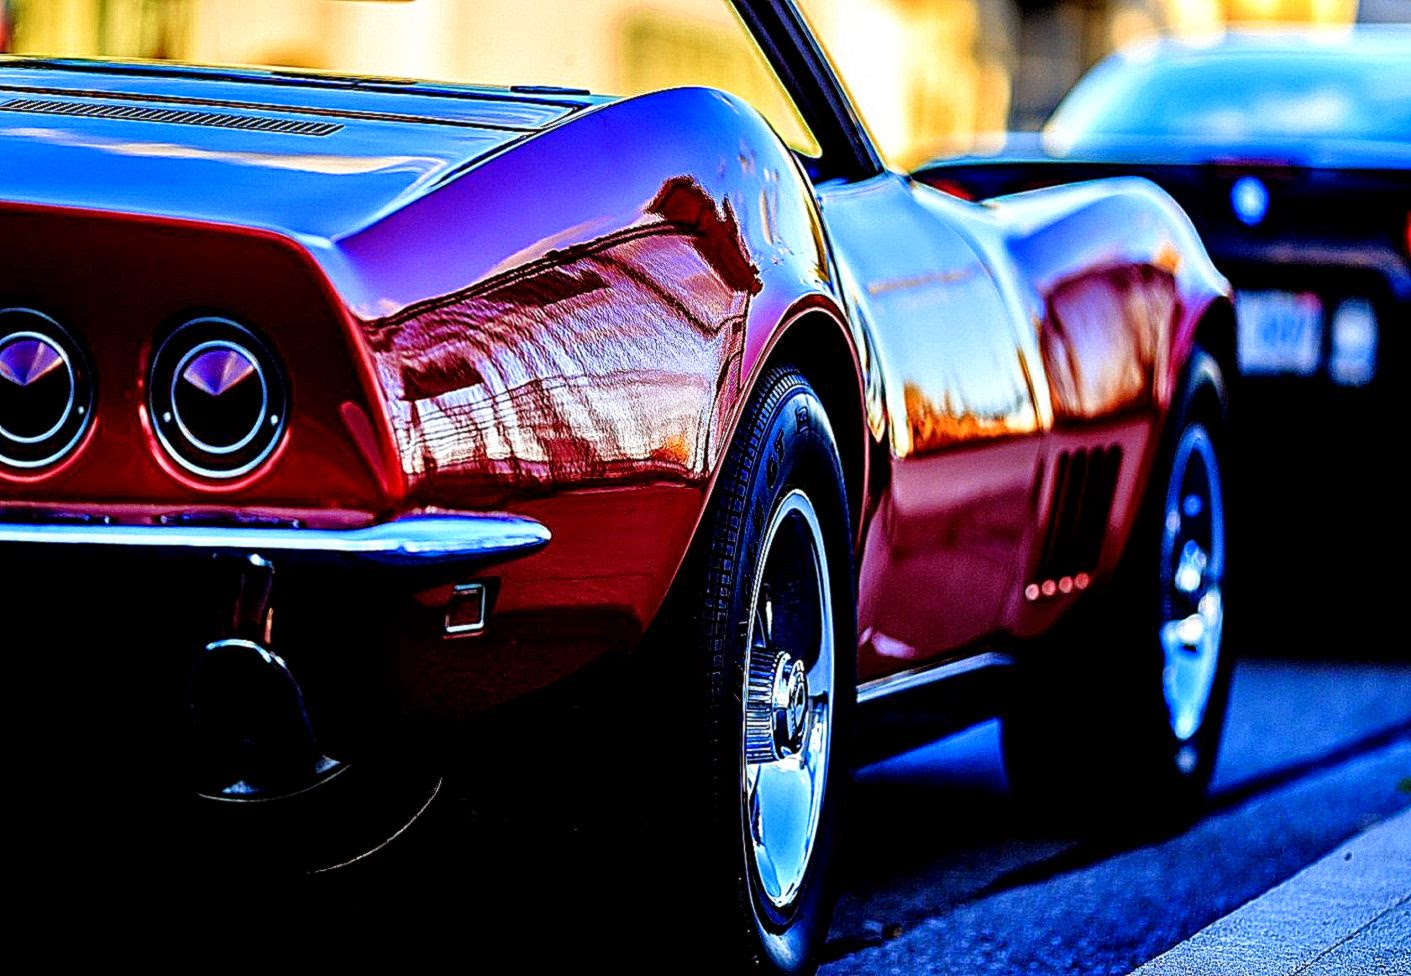 American Muscle Car Mobile Wallpaper Hd Car Wallpaper Awesome Paint Style Best Background Wallpaper